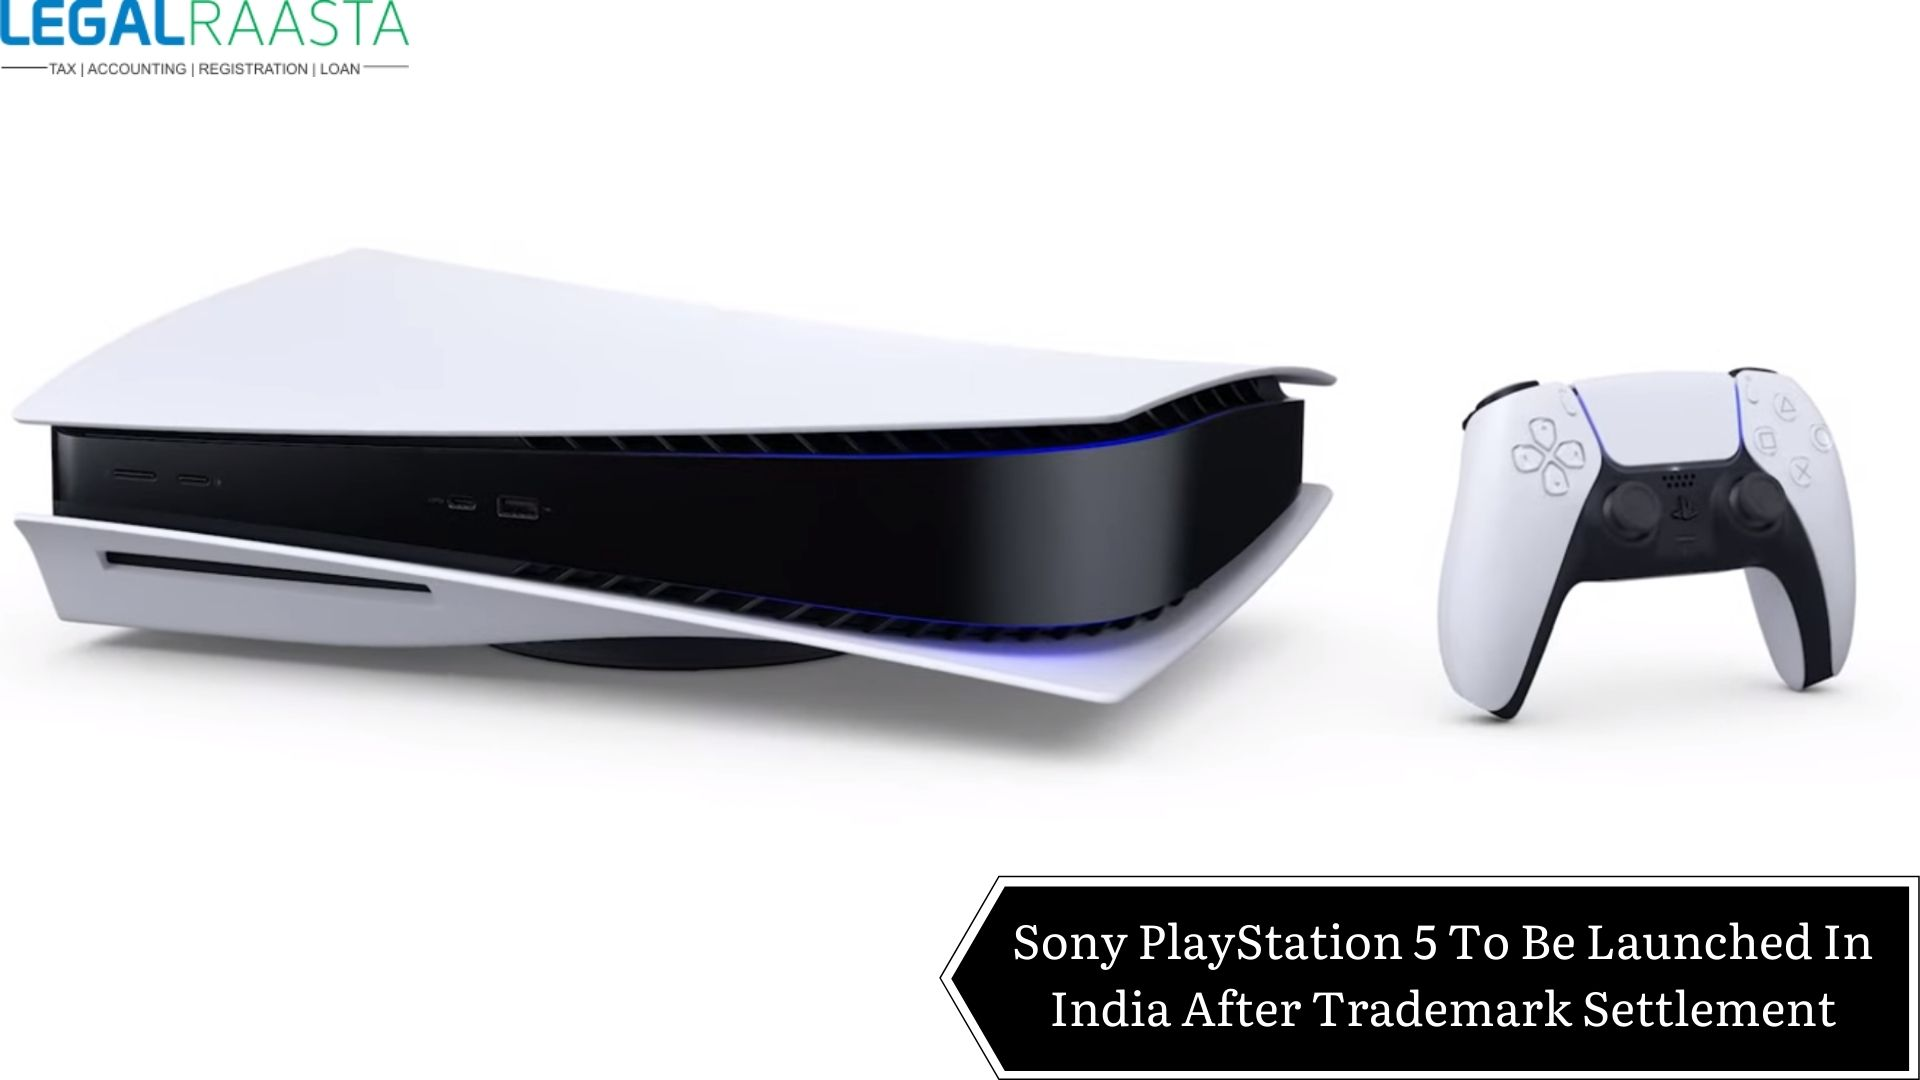 Sony PlayStation 5 To Be Launched In India After Trademark Settlement